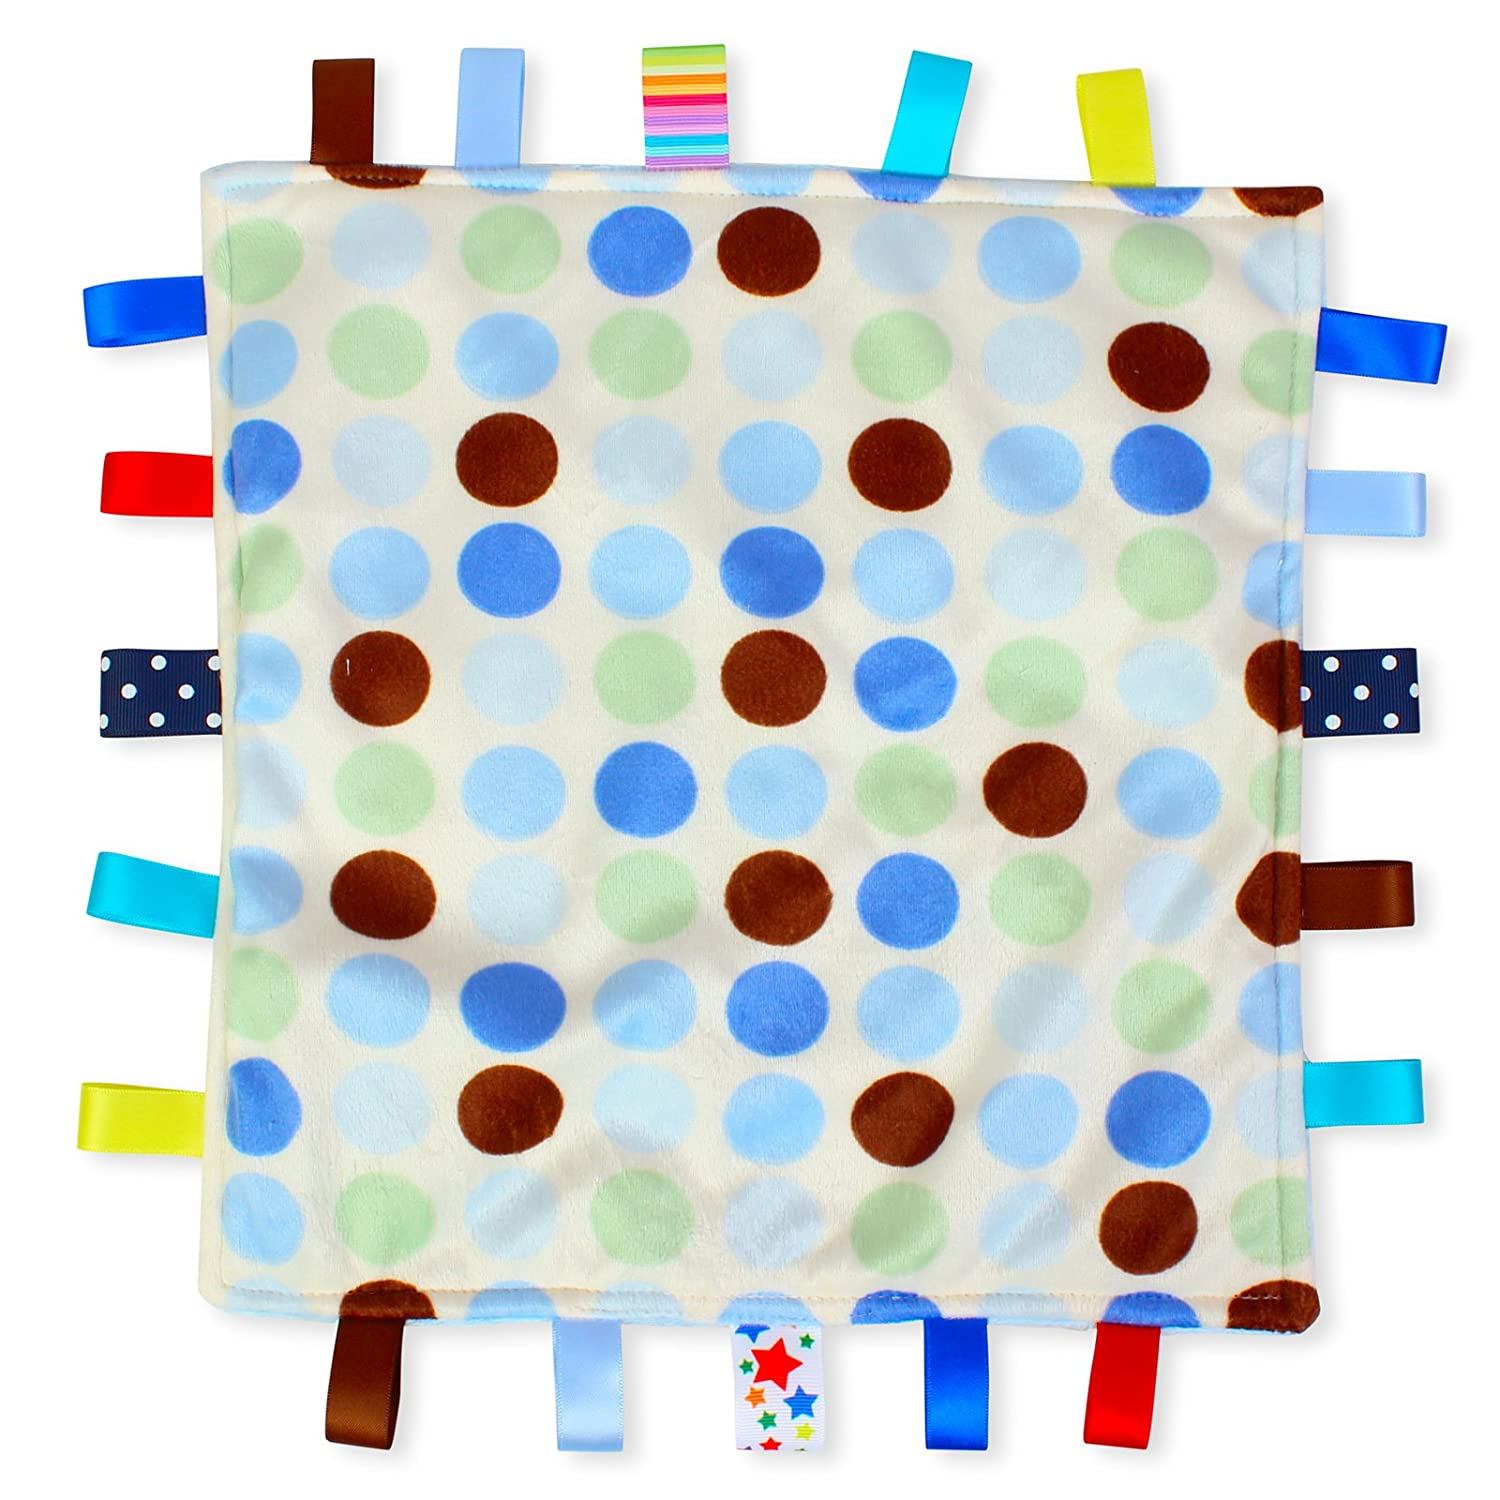 Blue Dot Baby Tag Blanket - White with Blue Polka Dot Taggy blanket with Plain Blue Textured Underside For the Love of Leisure